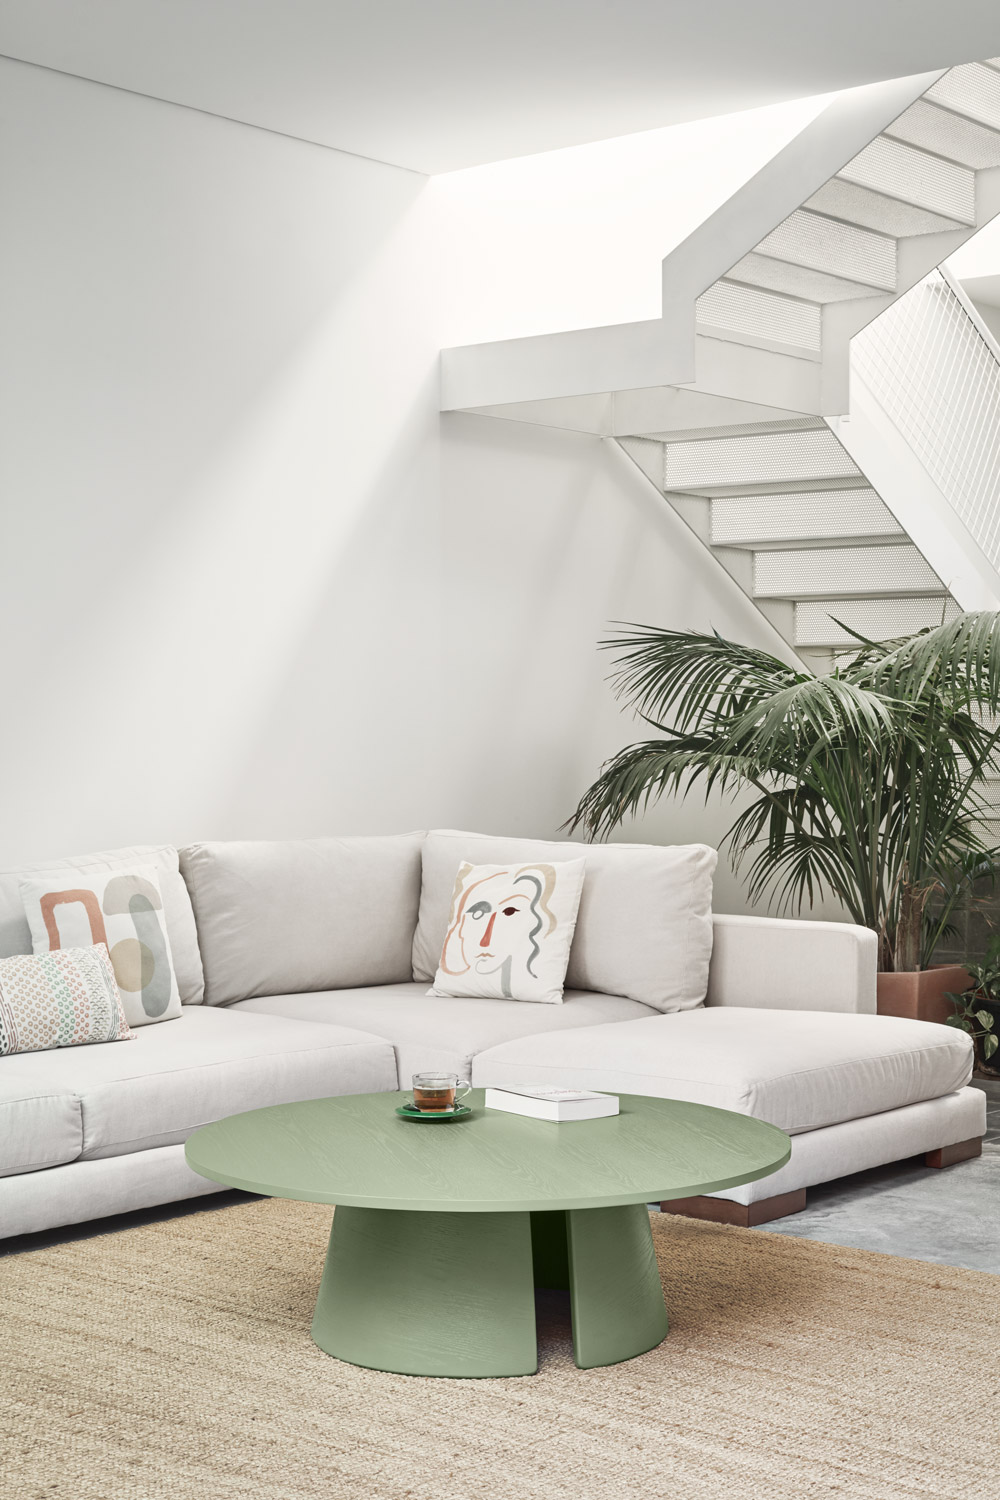 Teulat_Cep_Coffee-table_Green